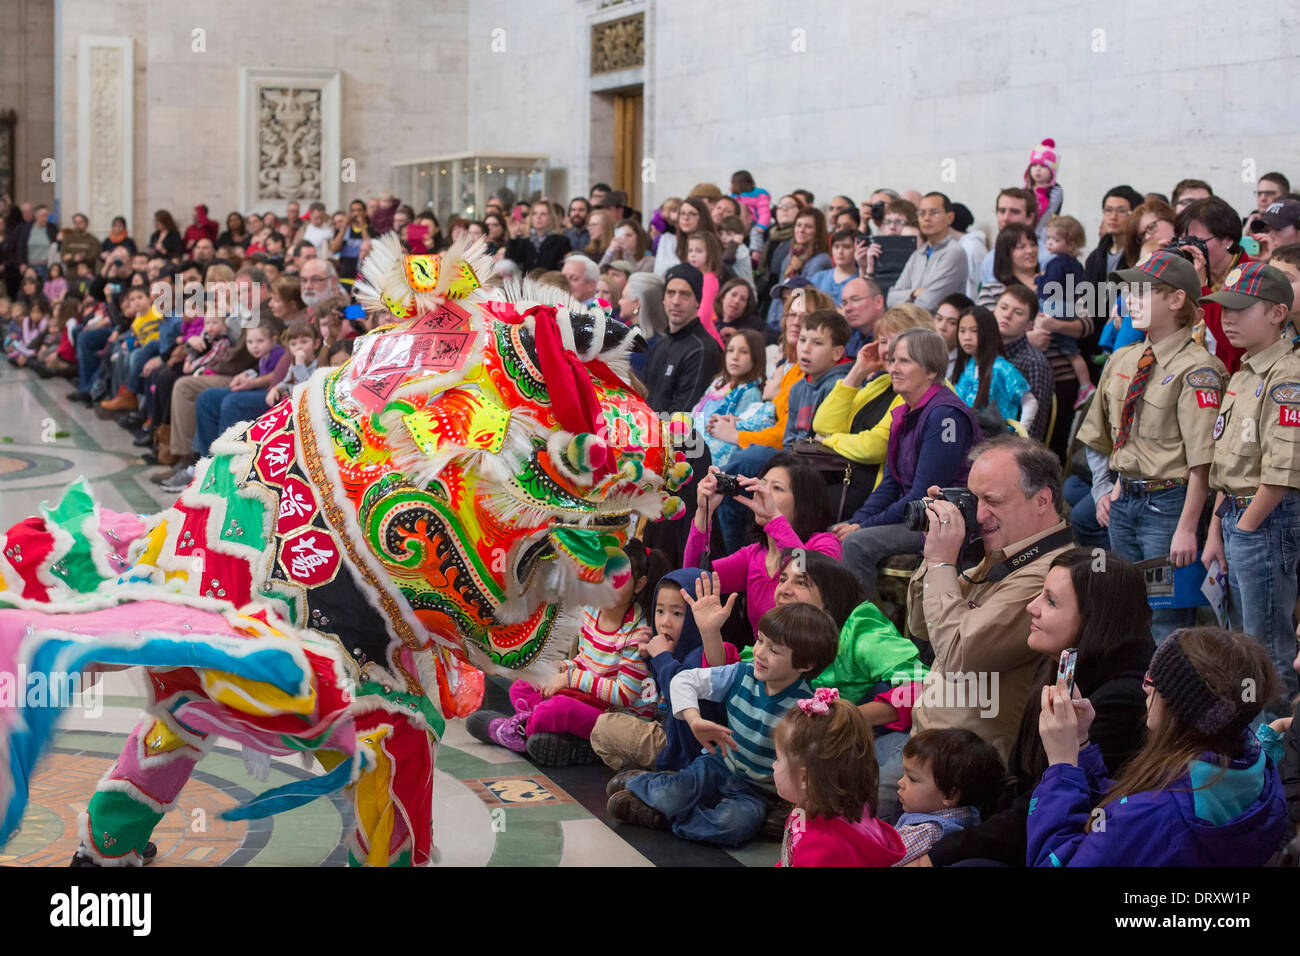 Southern Style Lion Dance for the Chinese New Year at the Detroit Institute of Arts - Stock Image